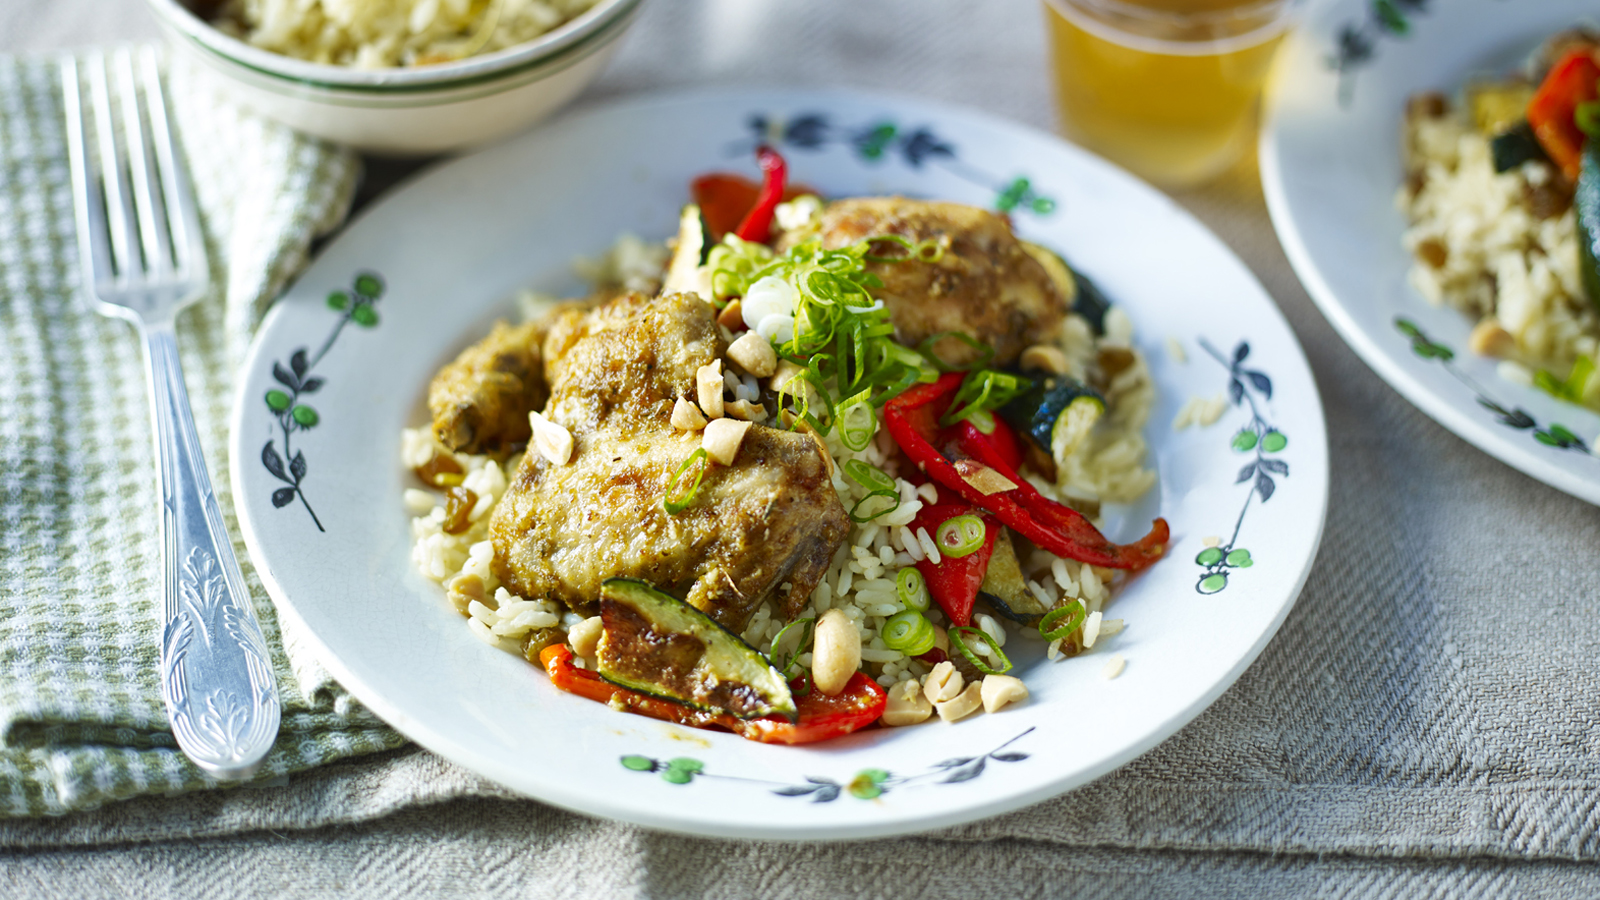 Chicken with spicy rice recipe bbc food forumfinder Images